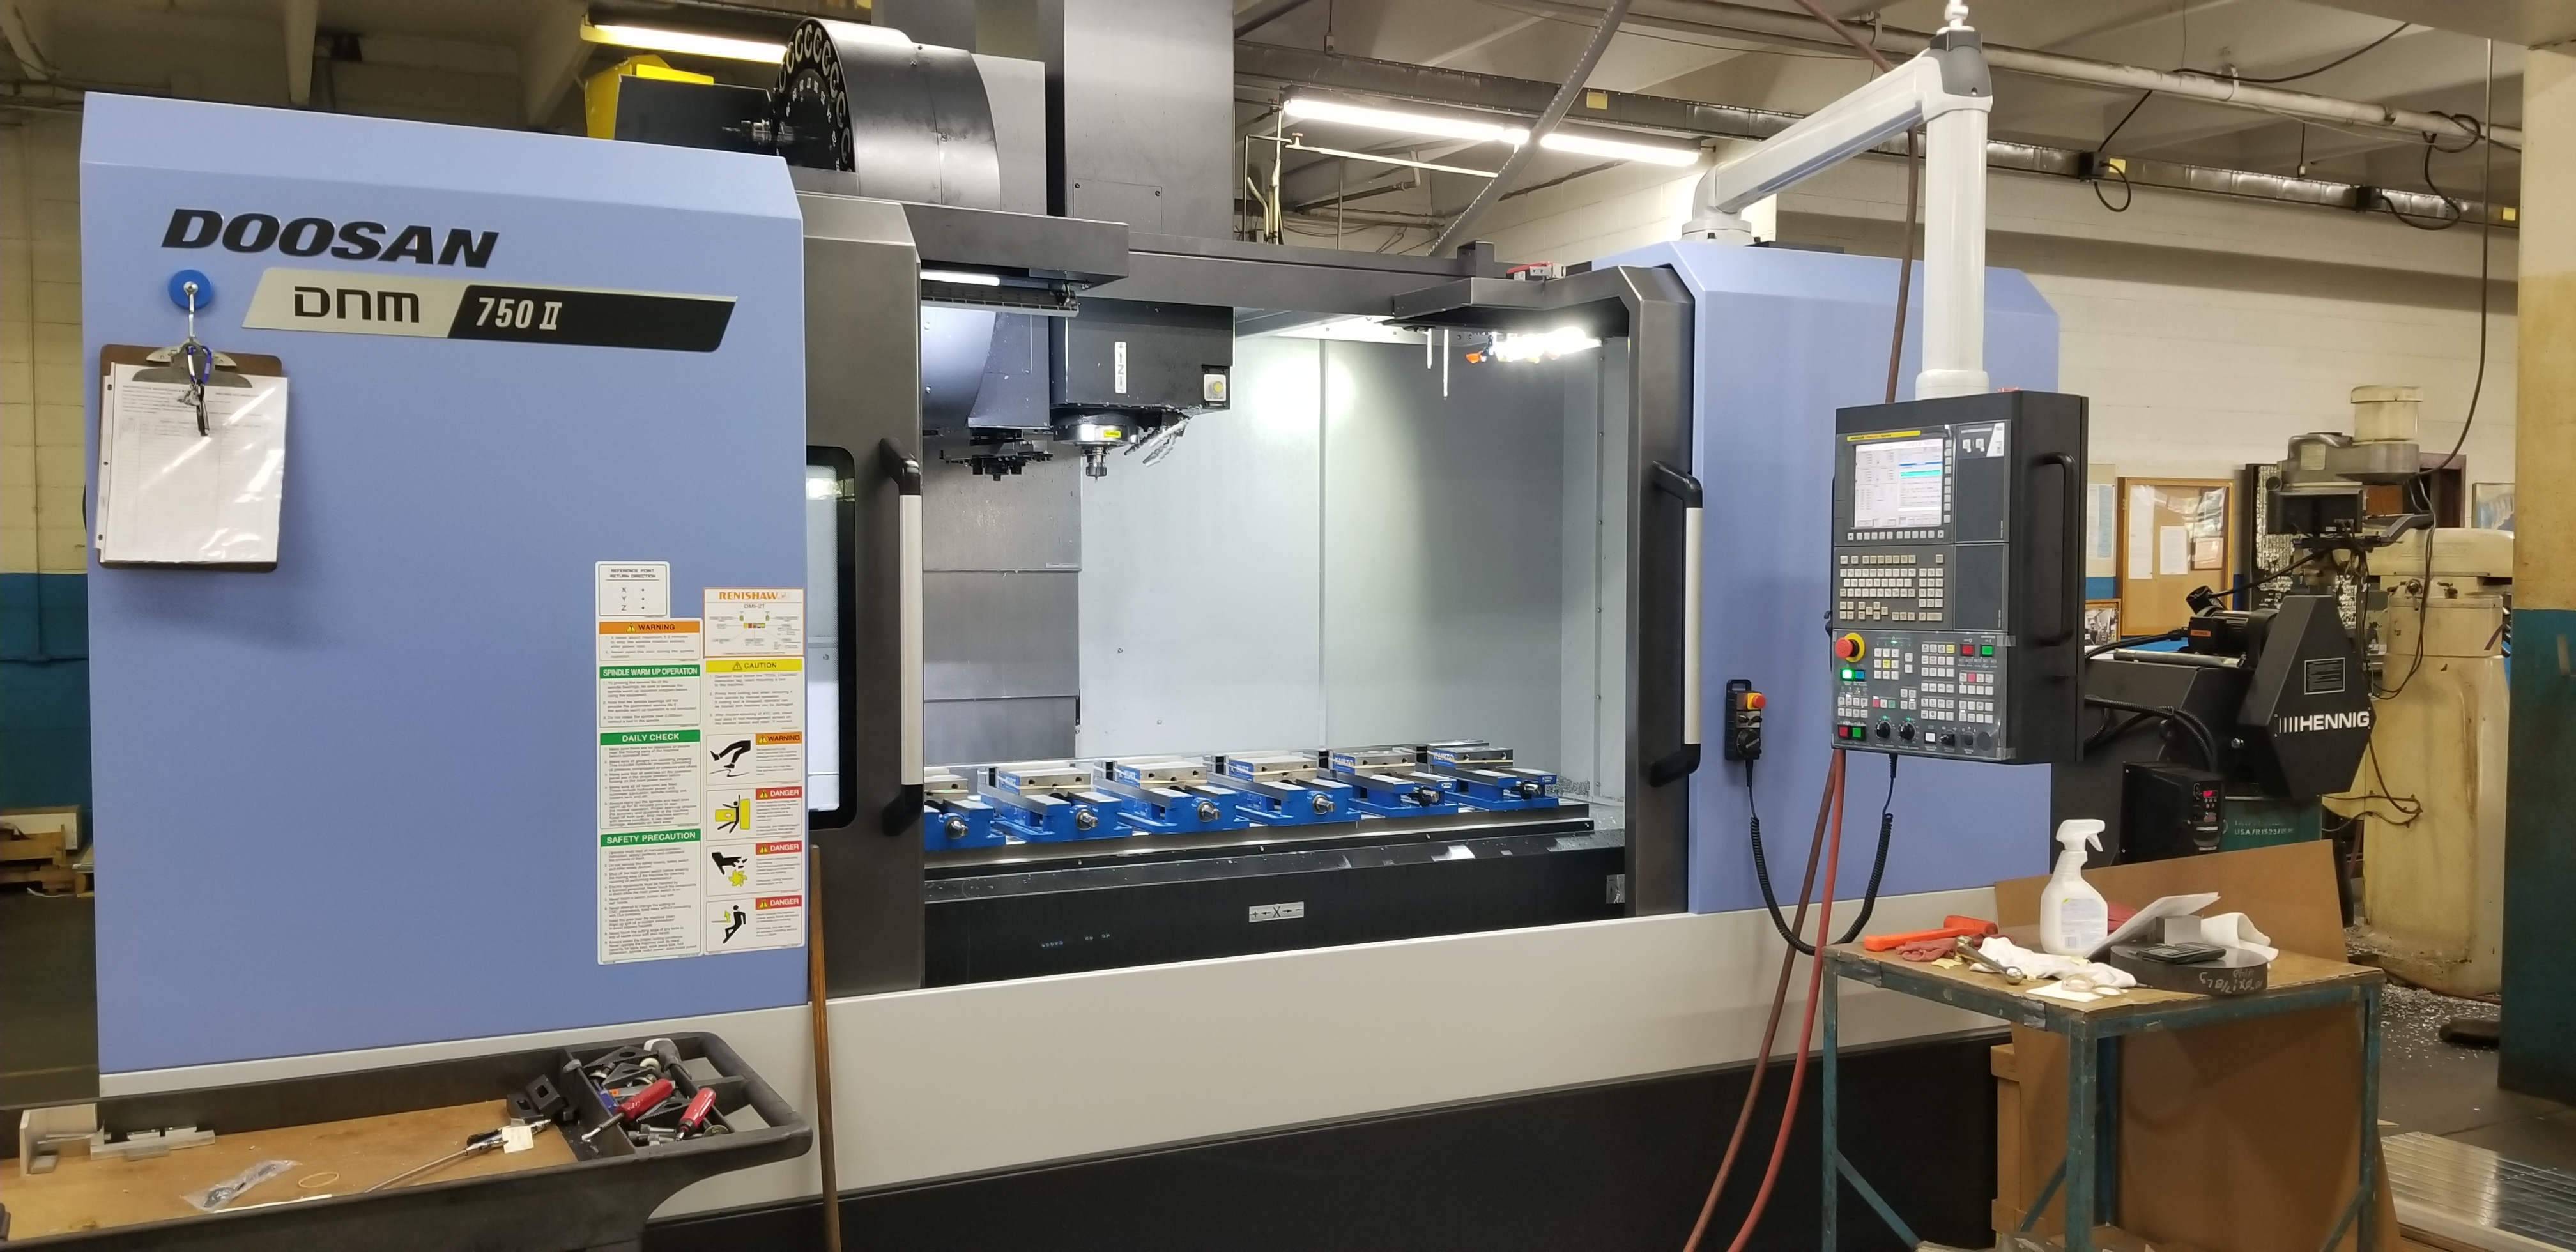 Courser can produce your products efficiently with our array of new CNC vertical milling machines and CNC lathes.